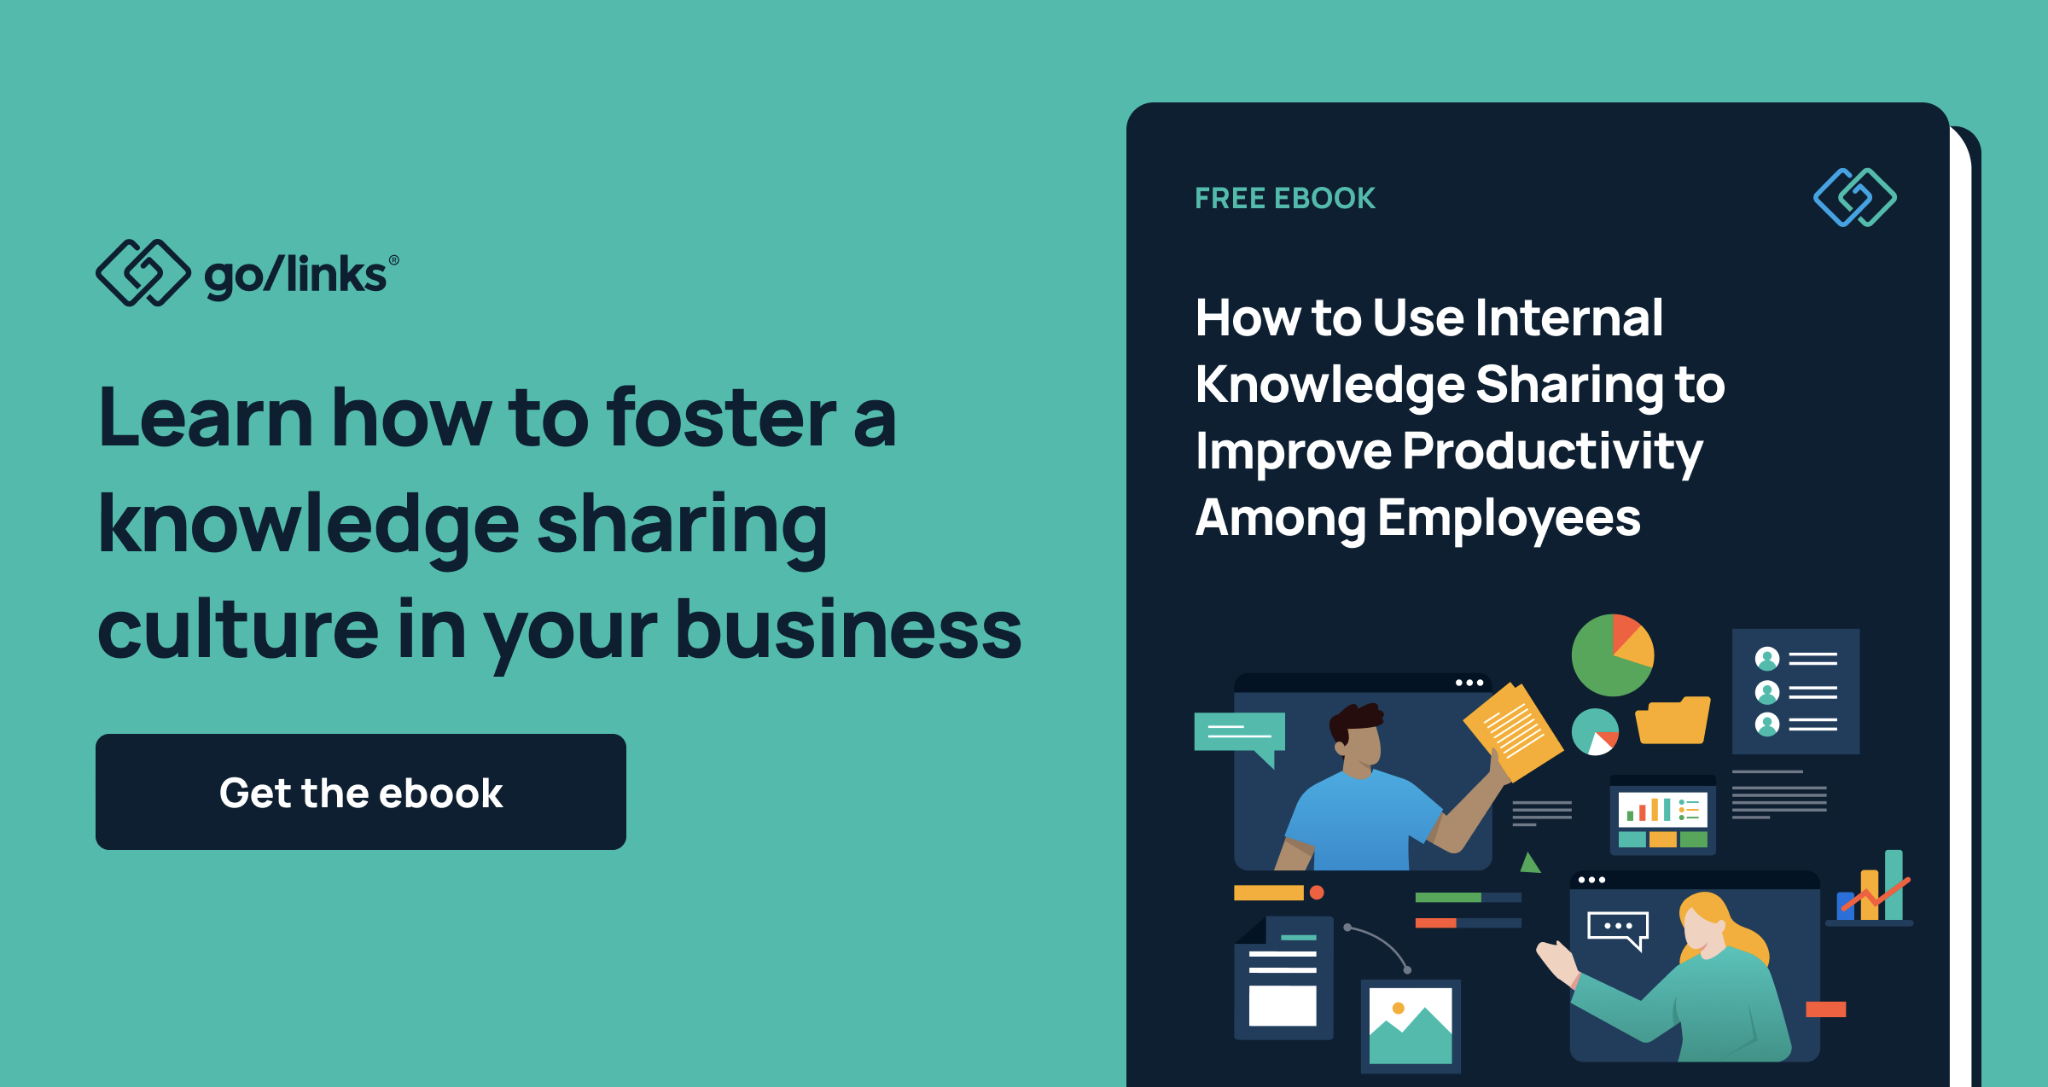 How to use internal knowledge sharing to improve productivity among employees ebook call to action